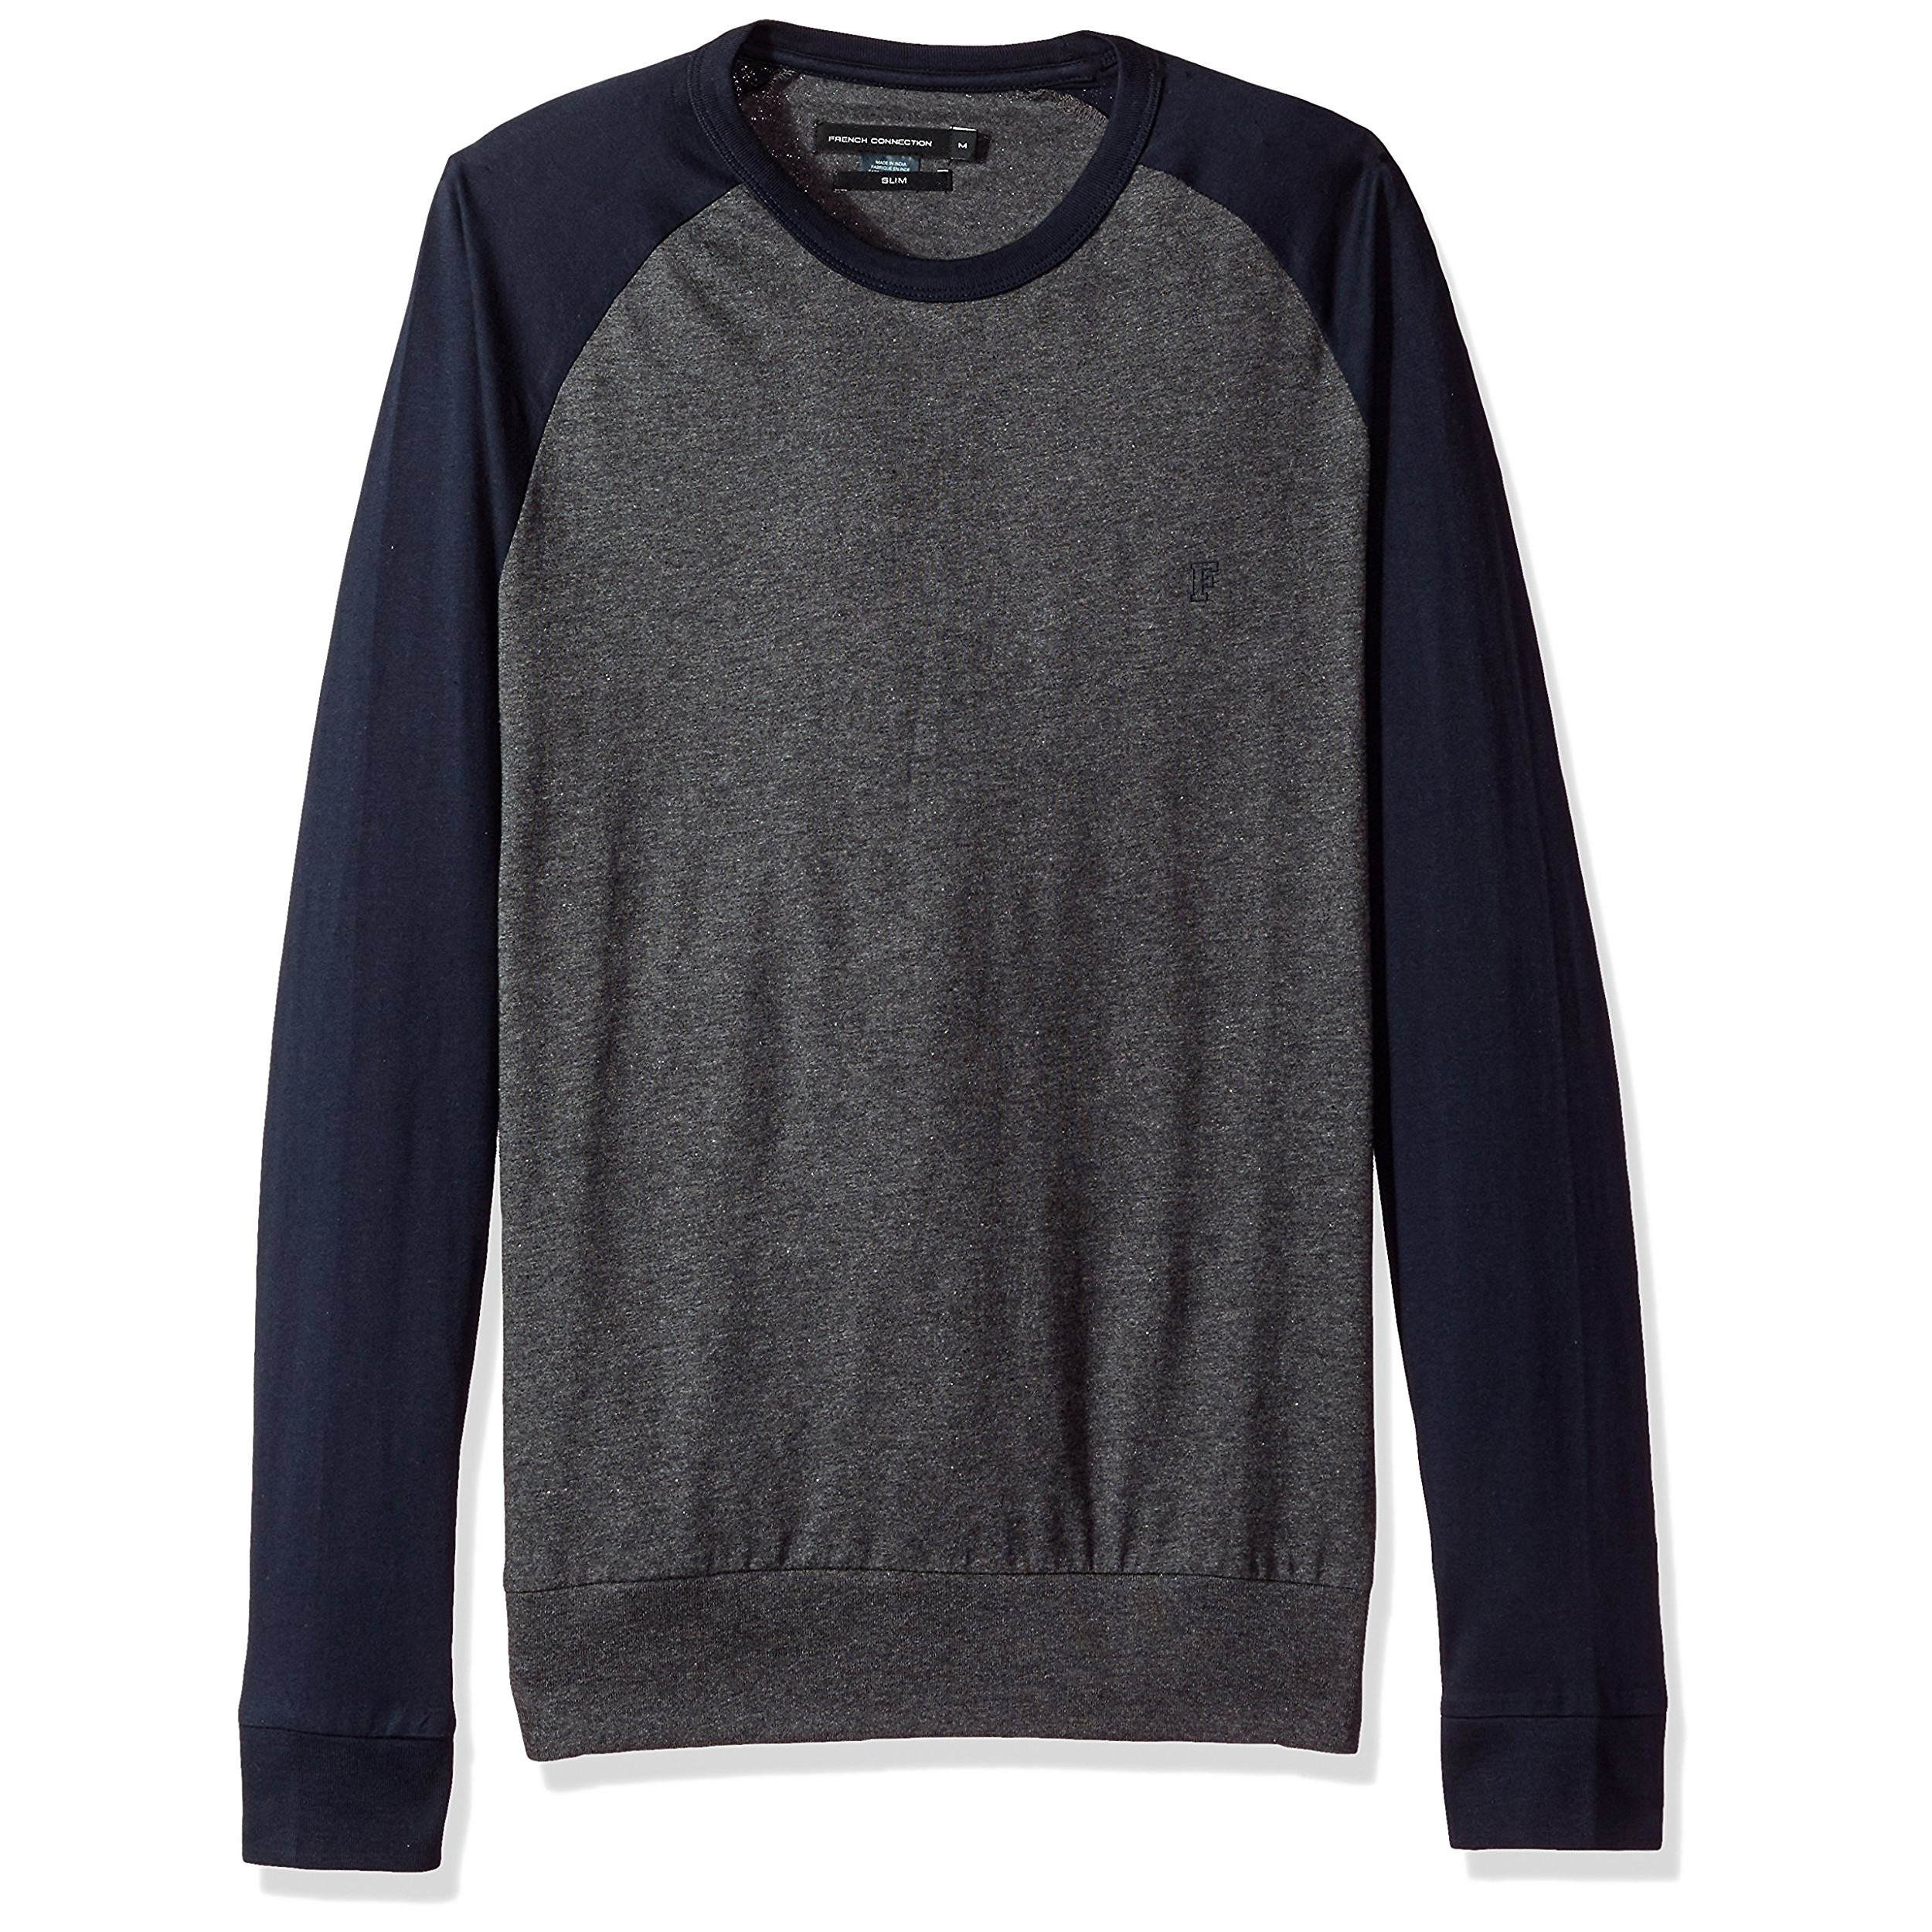 7dc51e335fc6e French Connection Crew Neck Raglan Long Sleeve T-Shirt Long Sleeve Charcoal